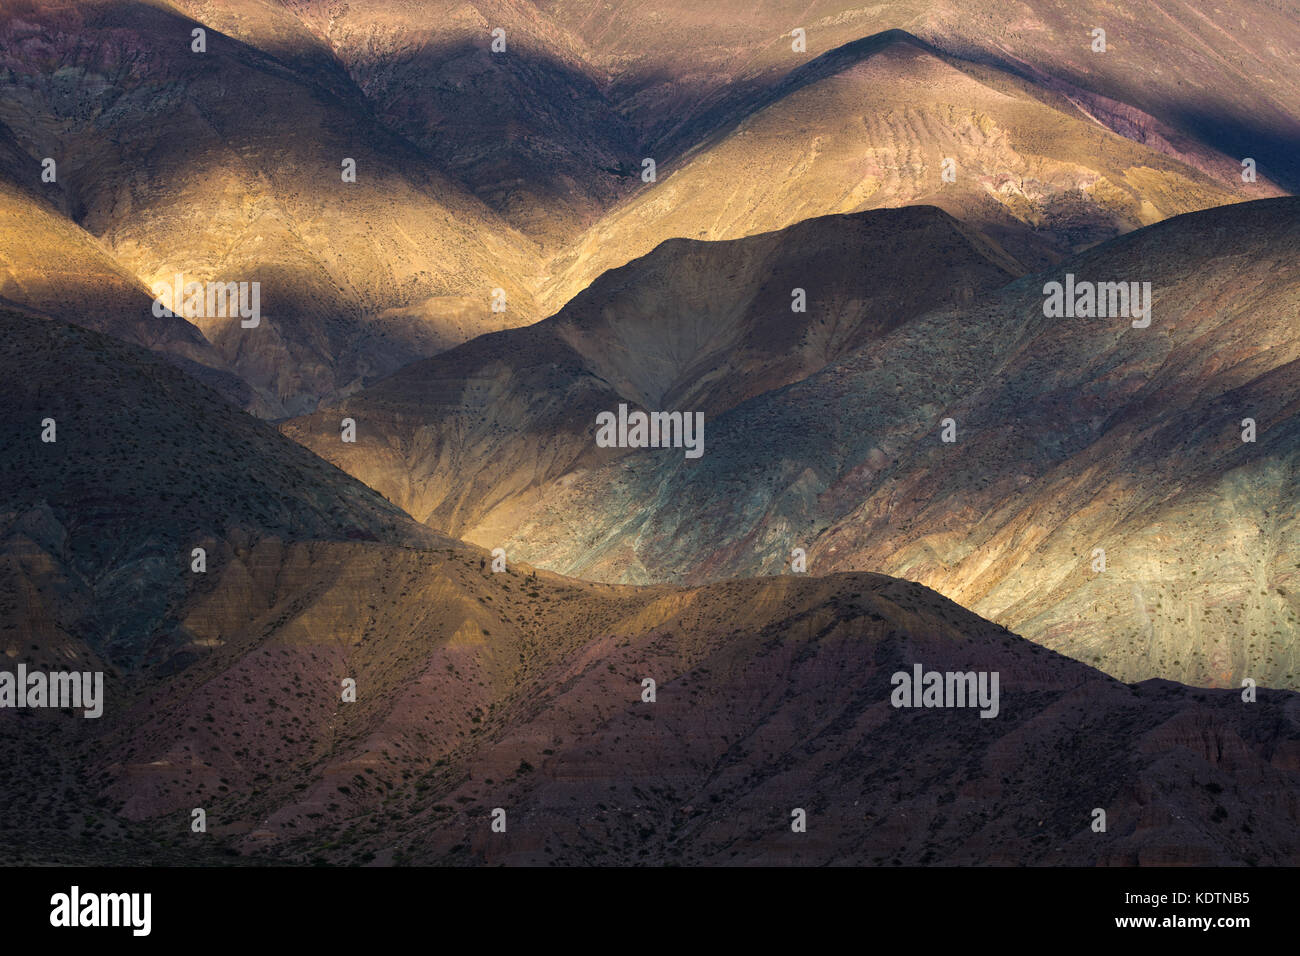 First light on the hills near Purmamarca, Quebrada de Humahuacha, Jujuy Province, Argentina - Stock Image